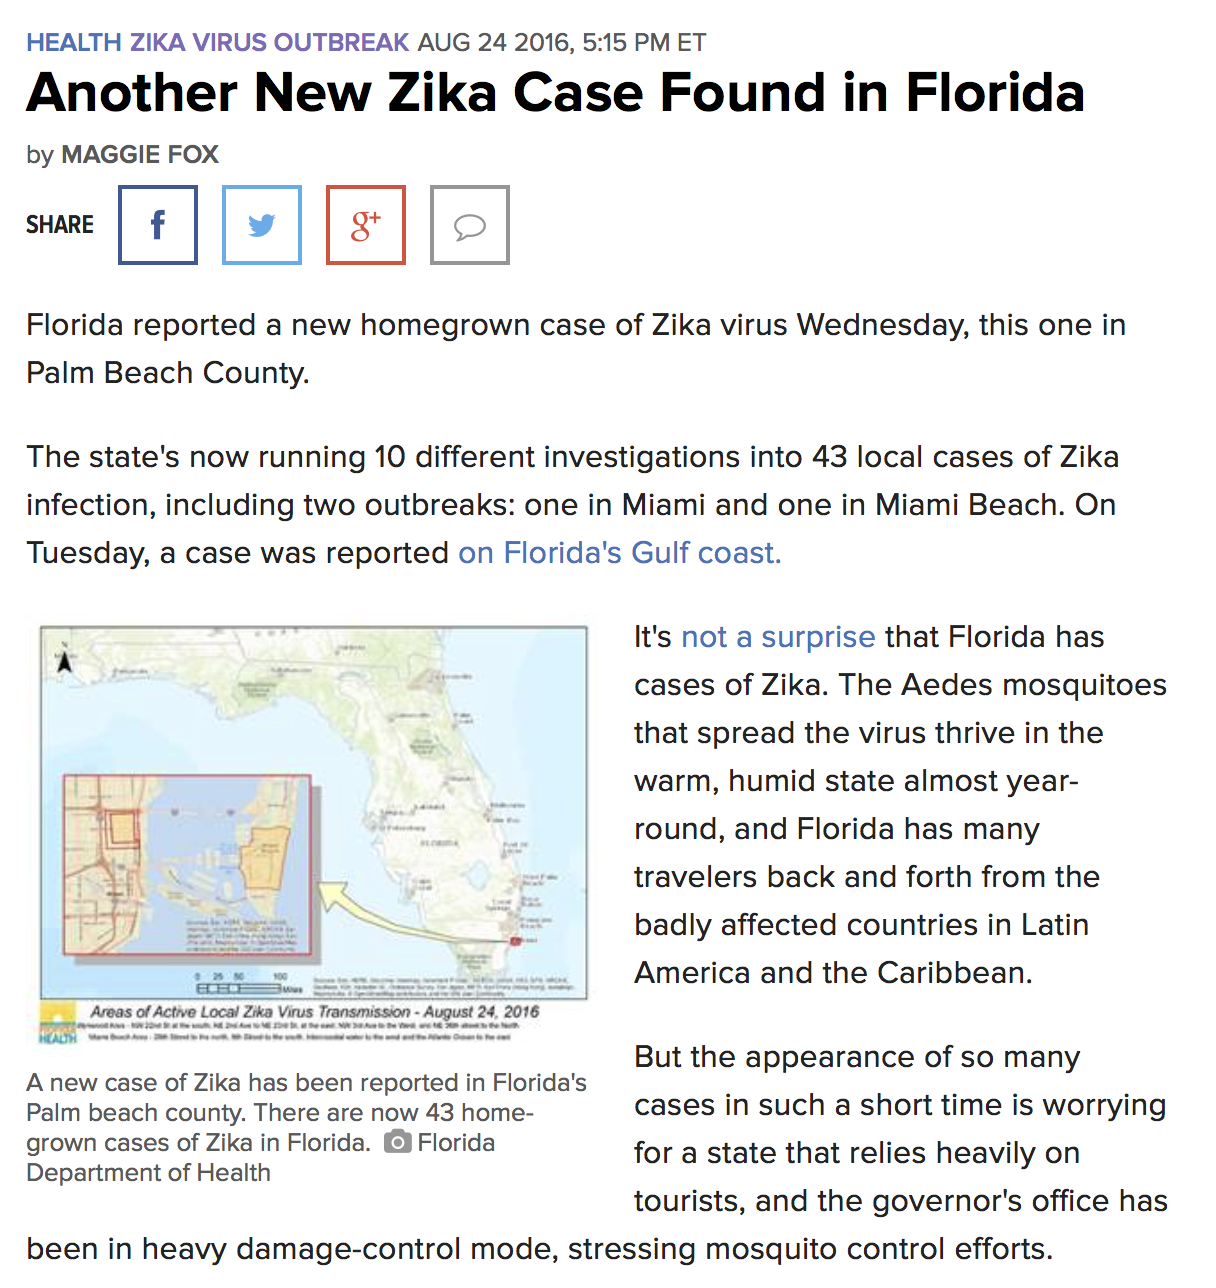 Viral News Update: Zika Virus News And Updates